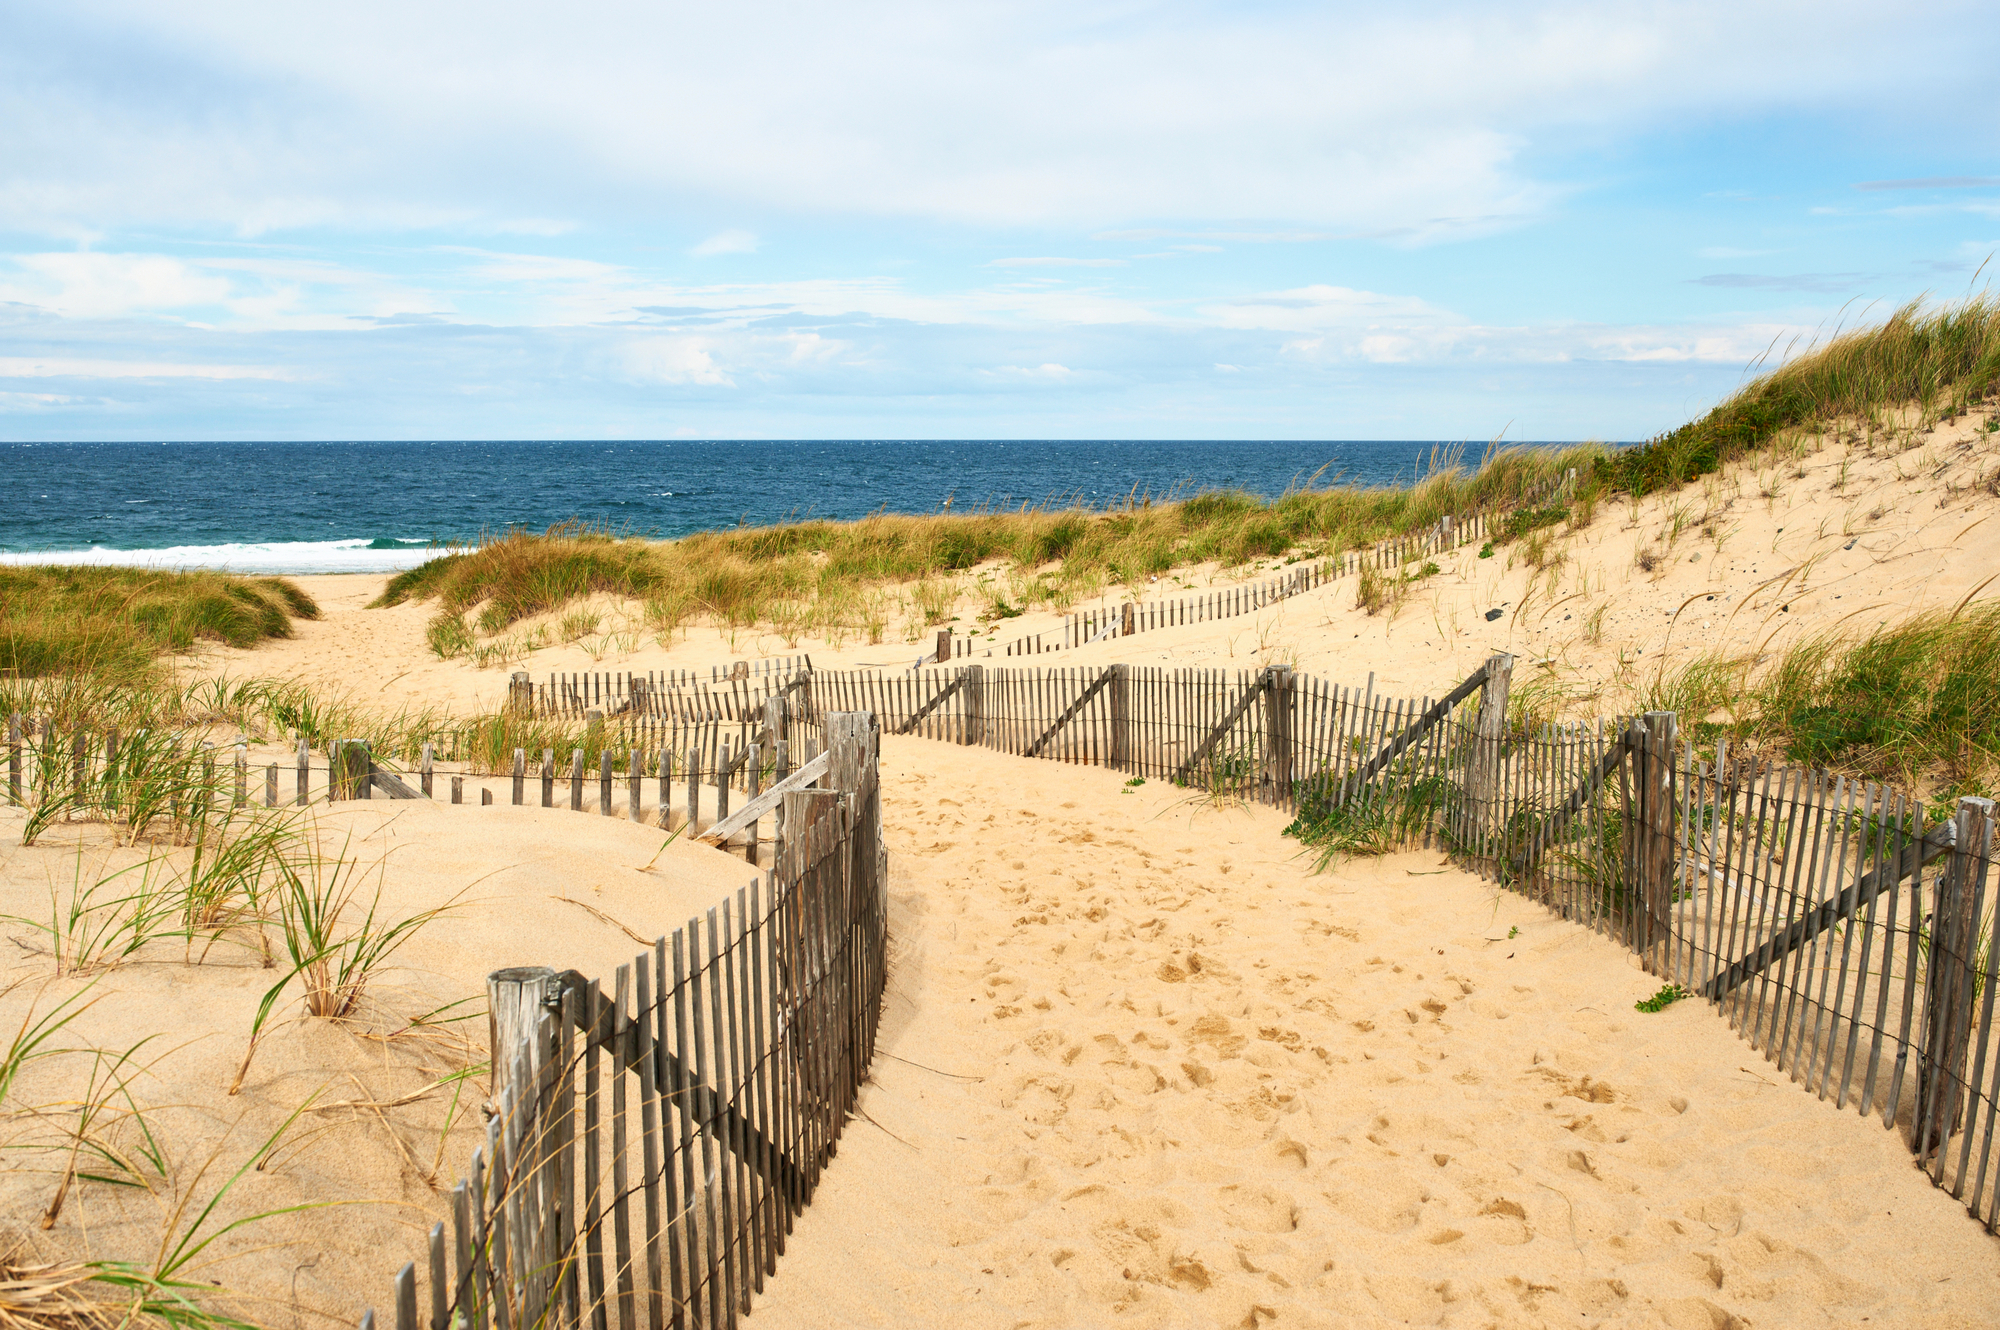 cape cod | Massachusetts | Cape Cod Massachusetts | beaches | Nantucket | lighthouses | swimming | destinations | vacations